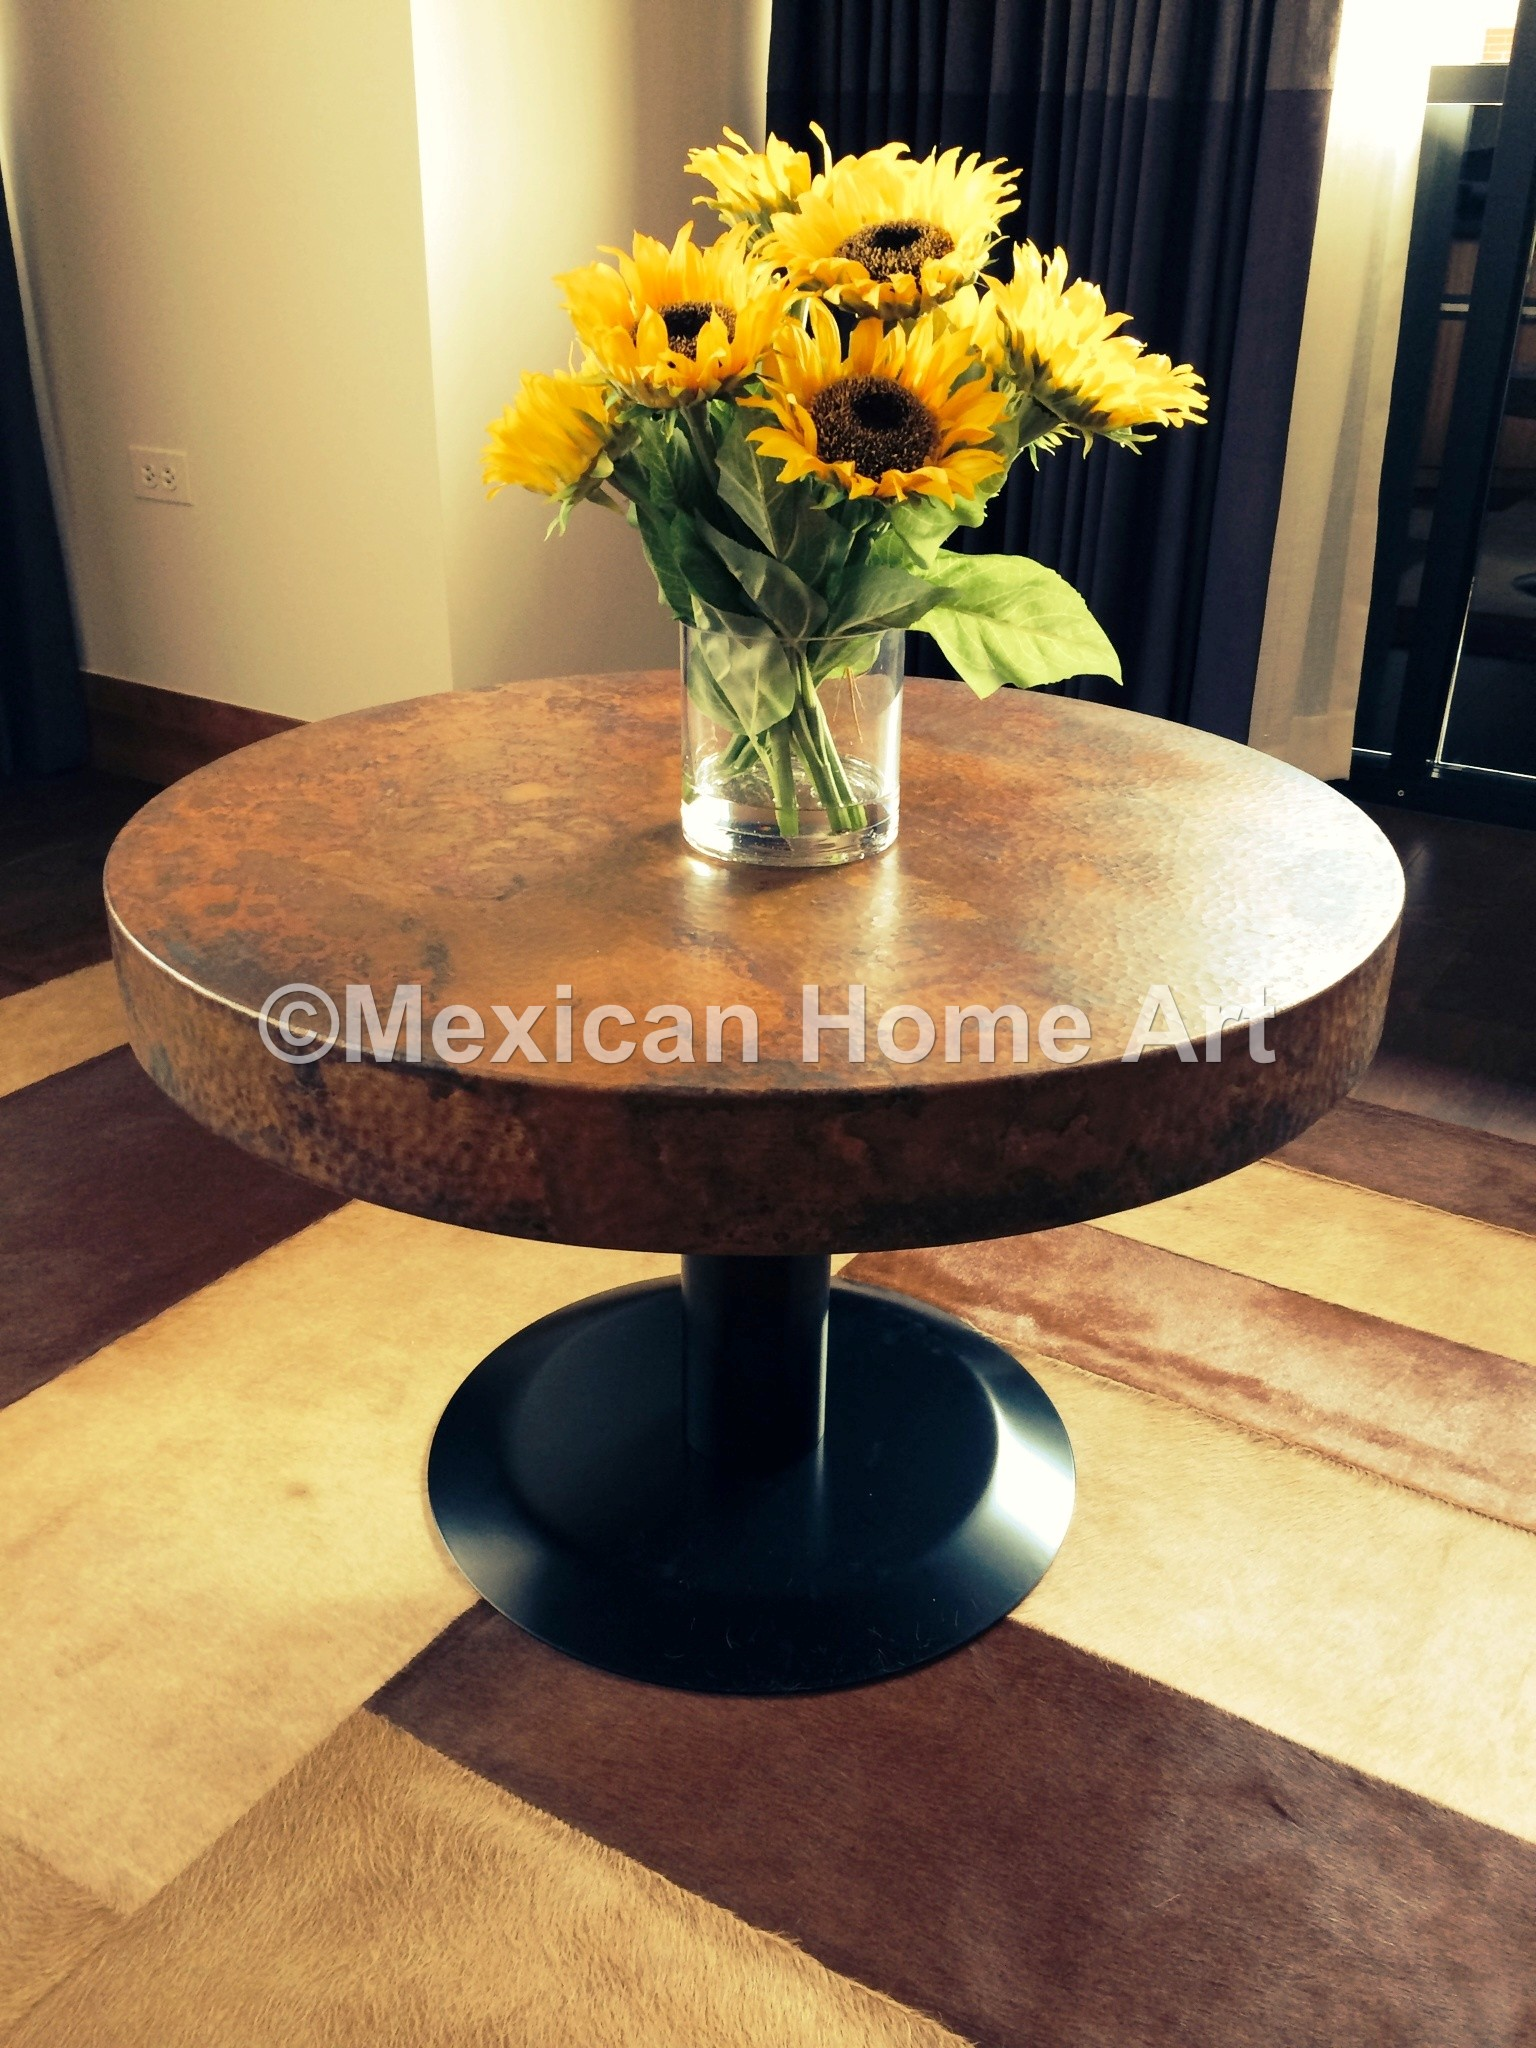 an-elegant-custom-copper-29-inch-table-top-with-disk-base-being-used-as-an-entry-table-in-this-customer-s-house..jpg